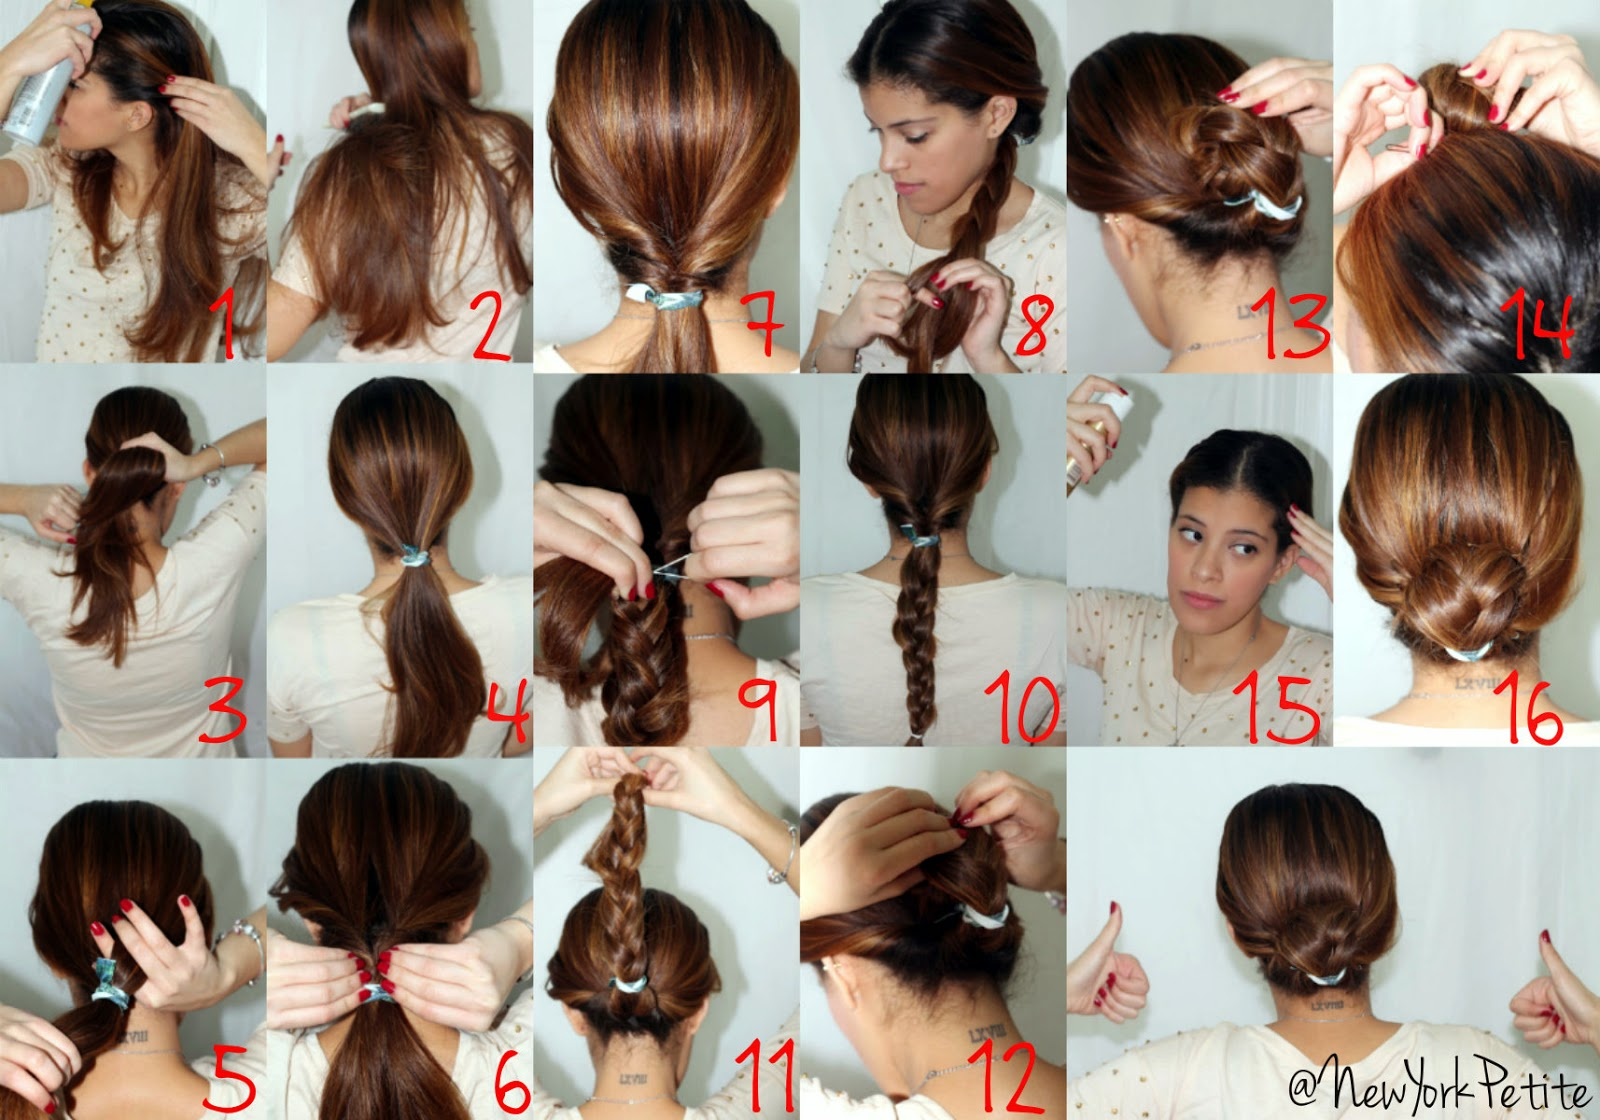 diy, tutorial, hair tutorial, beauty, hair, bun, braid, messy bun, messy braided bun, casual, formal, fashion, fashion blogger,blogger, easy, fun, pinterest, how to, new, new blogger, newbloggers, women, woman, hair style, style